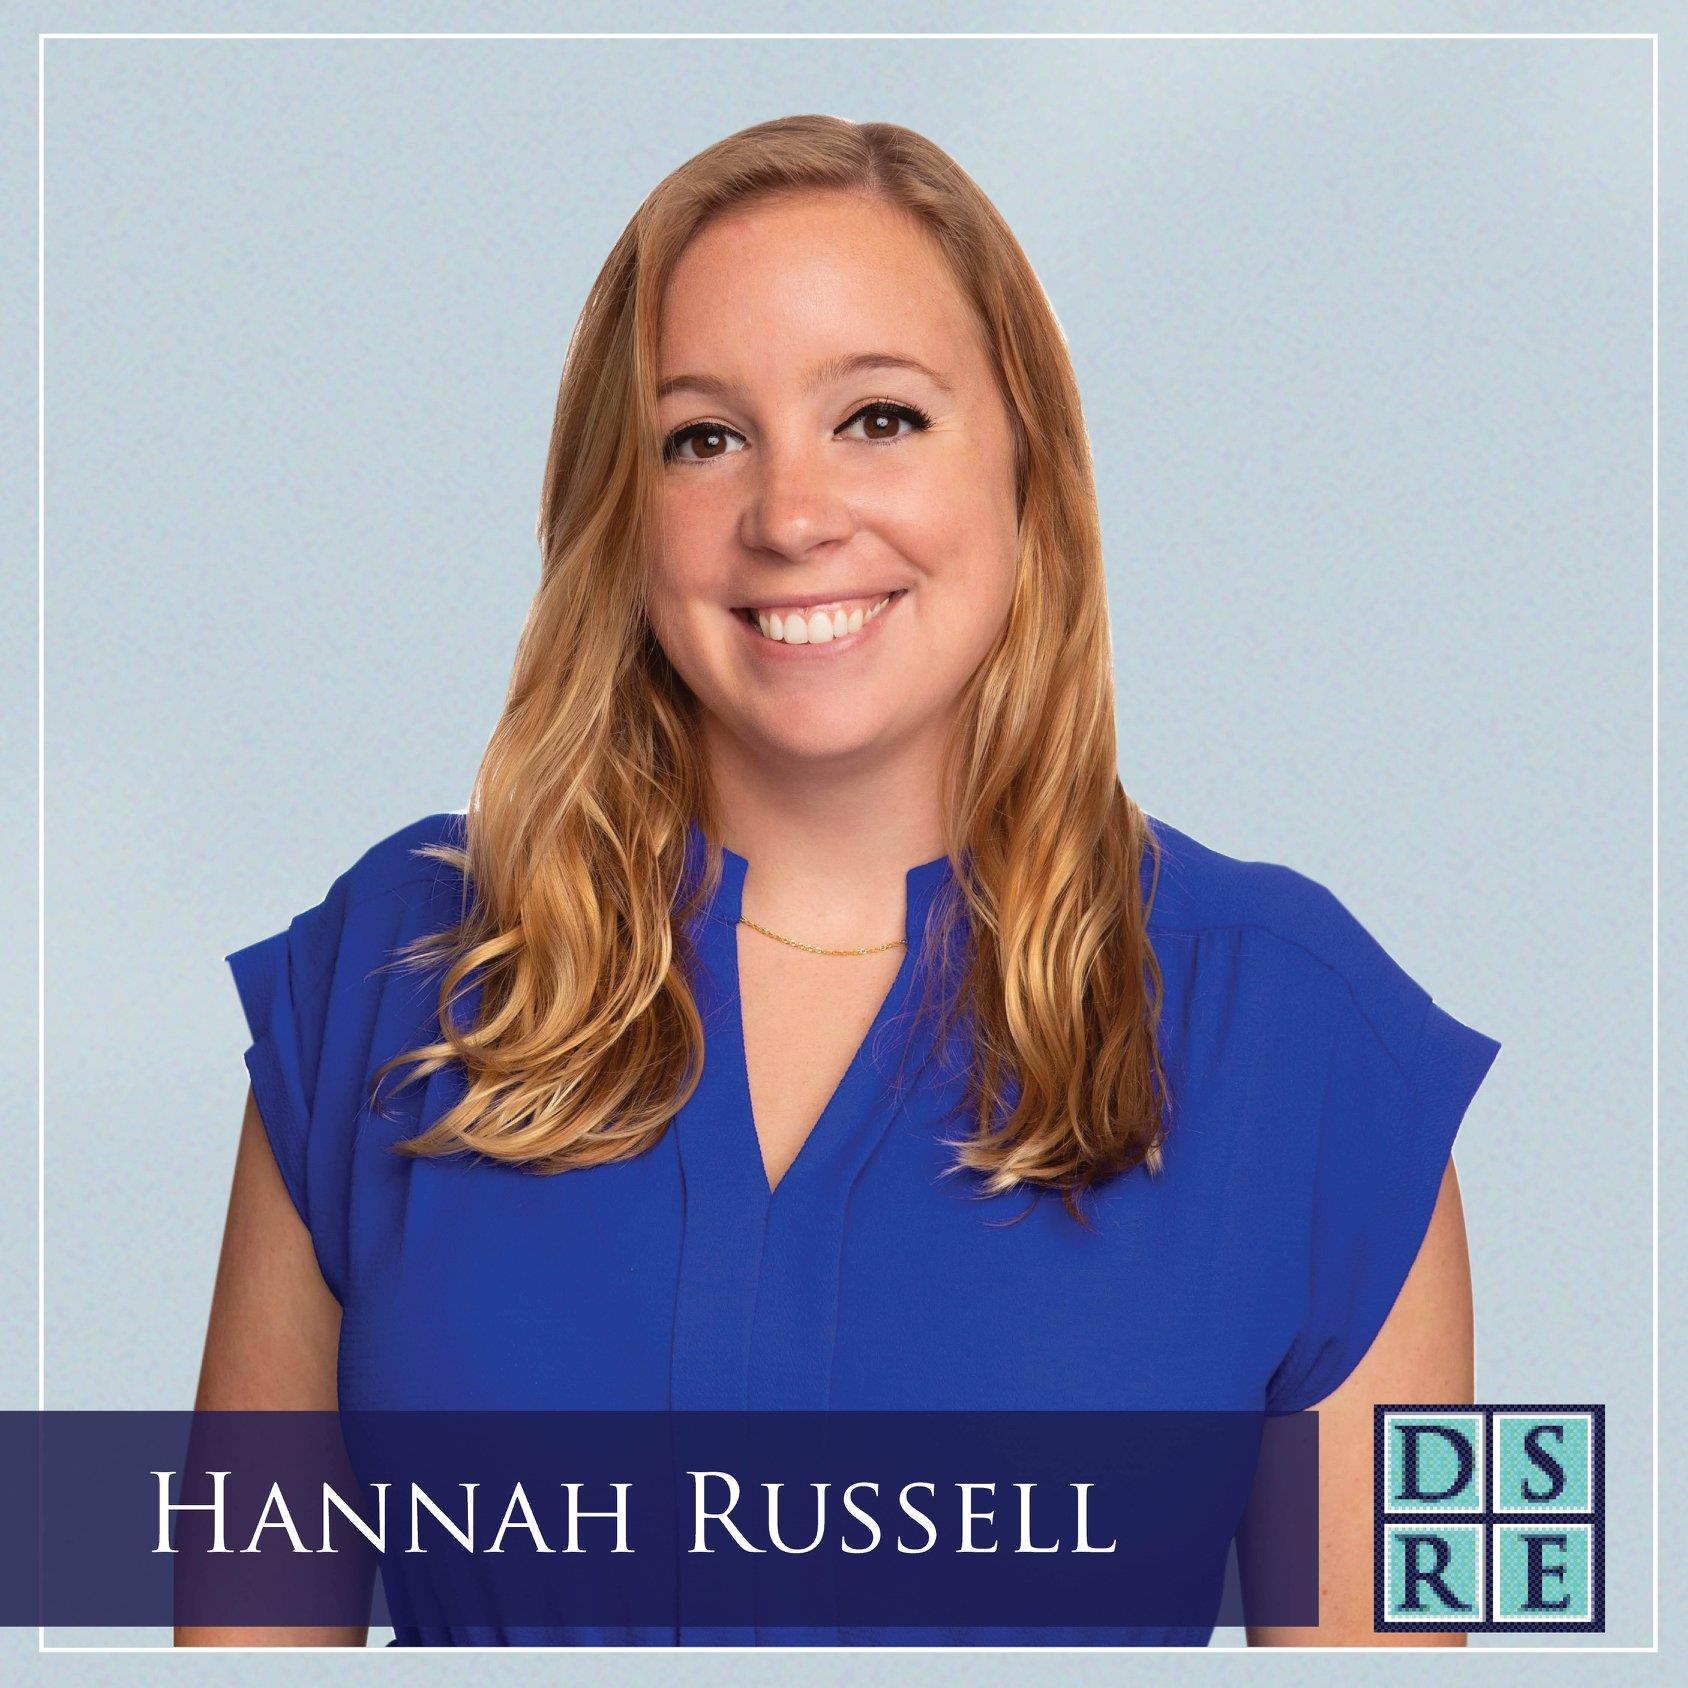 Dale Sorensen Real Estate welcomes sales associate Hannah Russell